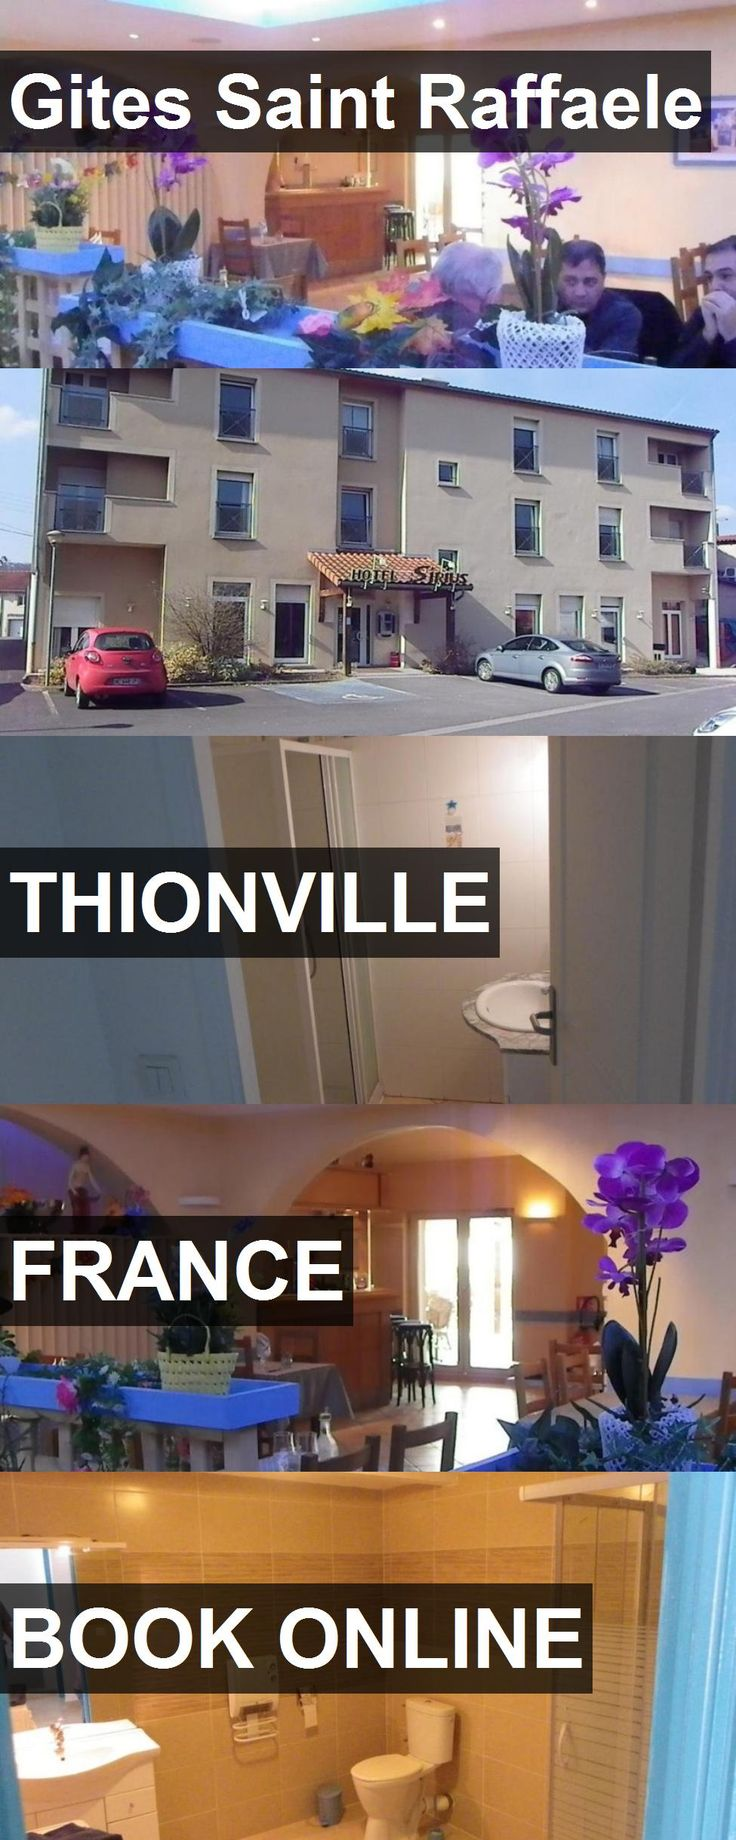 Hotel Gites Saint Raffaele in Thionville, France. For more information, photos, reviews and best prices please follow the link. #France #Thionville #travel #vacation #hotel